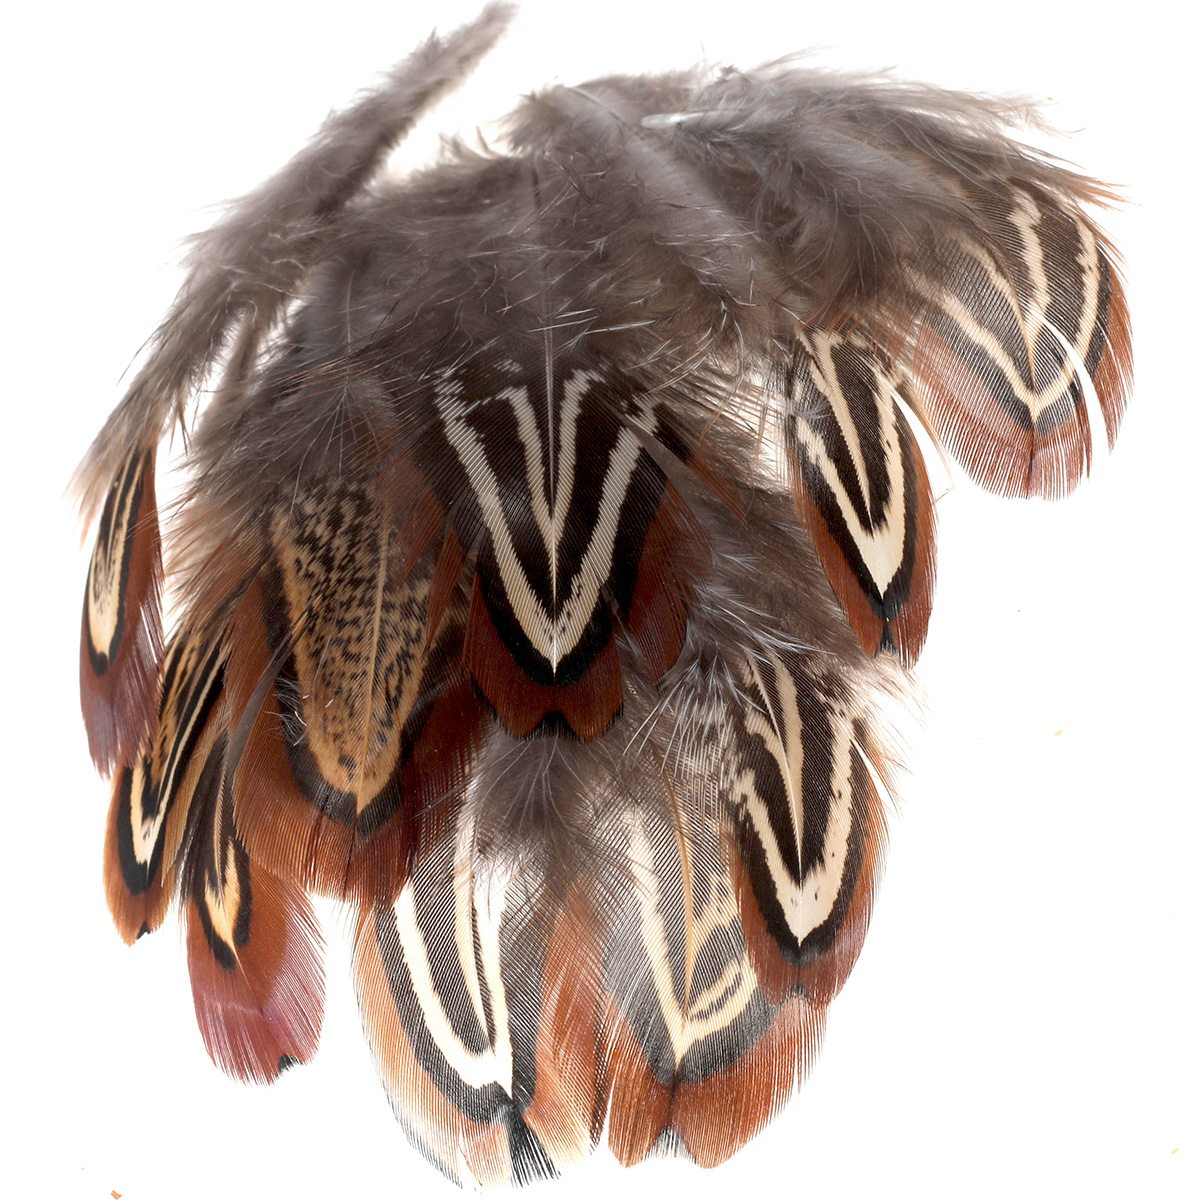 Pheasant Shoulder Feathers (Church Windows)